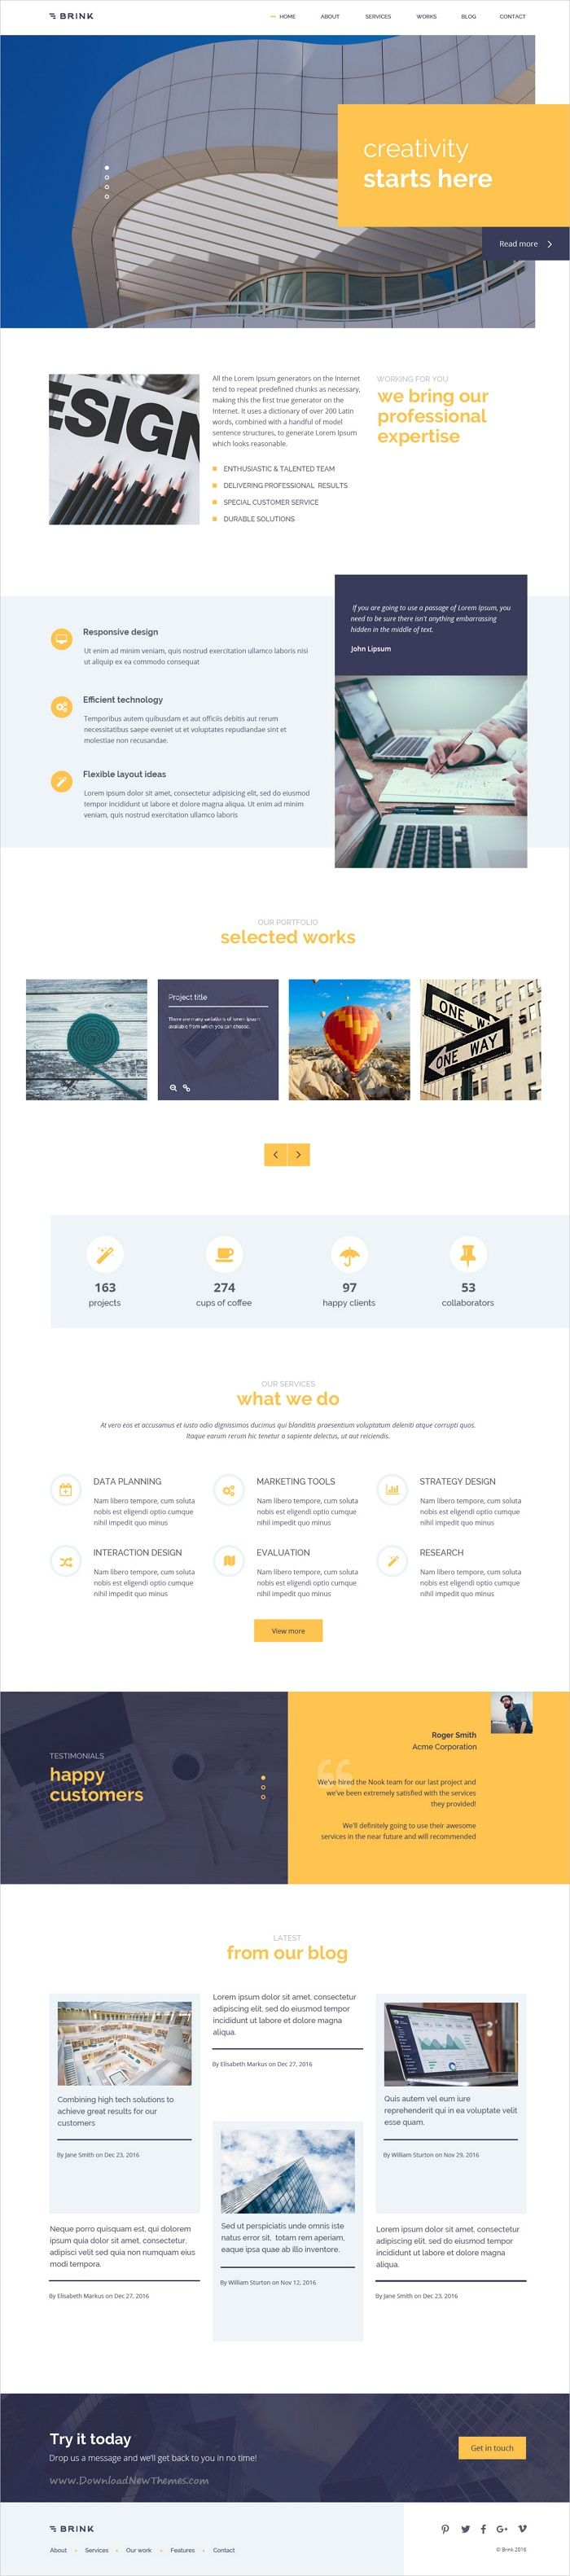 Brink is a creative and fresh #business #Photoshop template for #webde corporate or marketing and finance websites with 4 homepage variations and 18+ organized PSD files download now➩ https://themeforest.net/item/brink-creative-business-psd-template/19343455?ref=Datasata